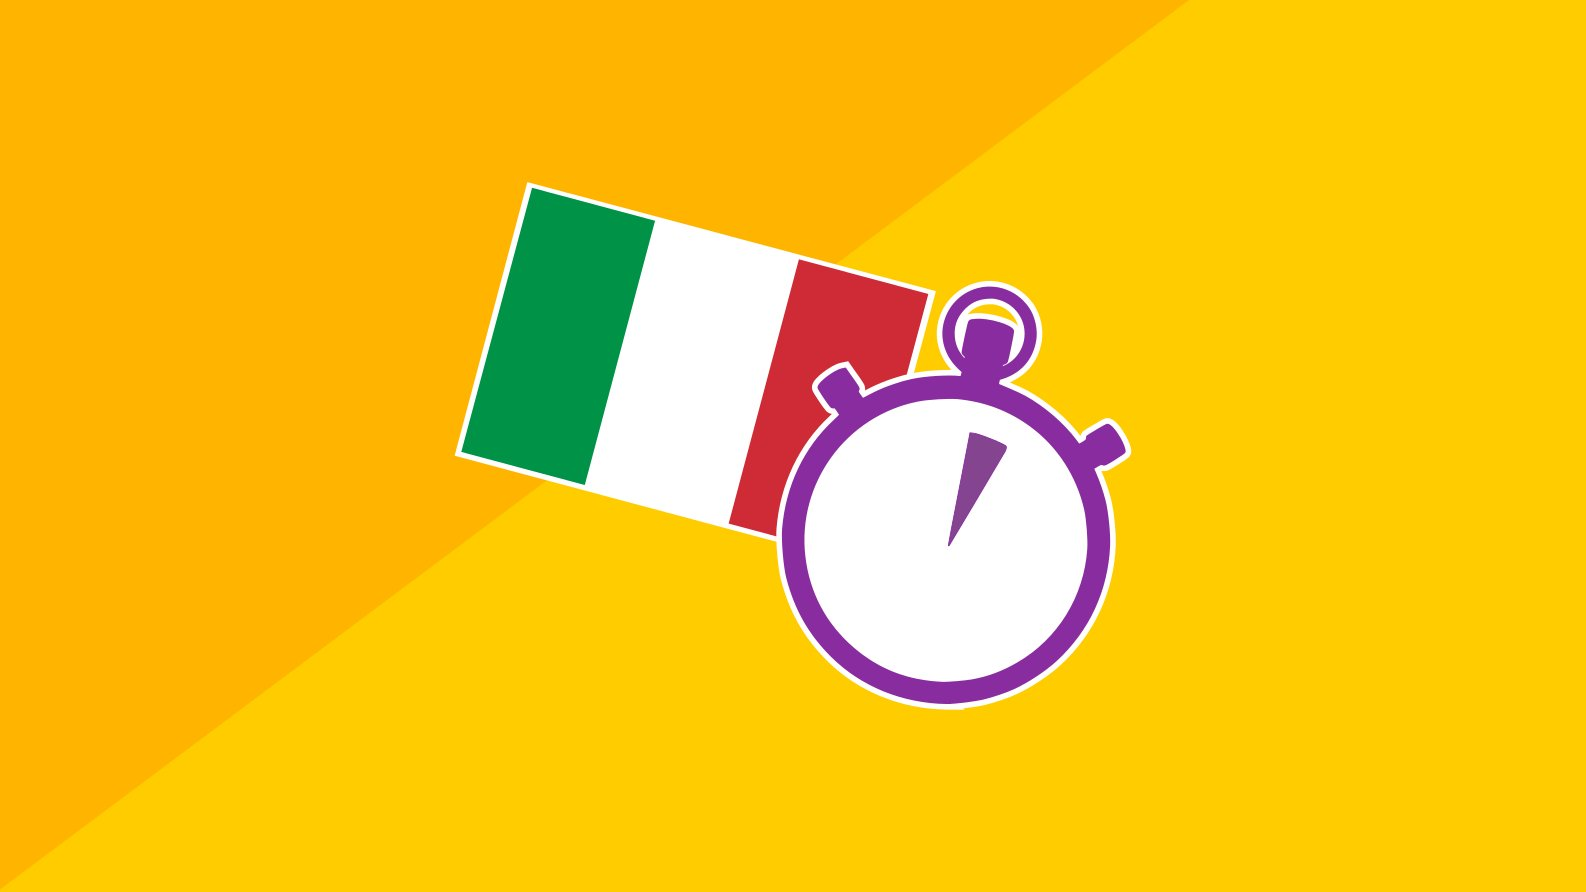 3 Minute Italian Course 4 Language Lessons For Beginners Kieran Ball Skillshare